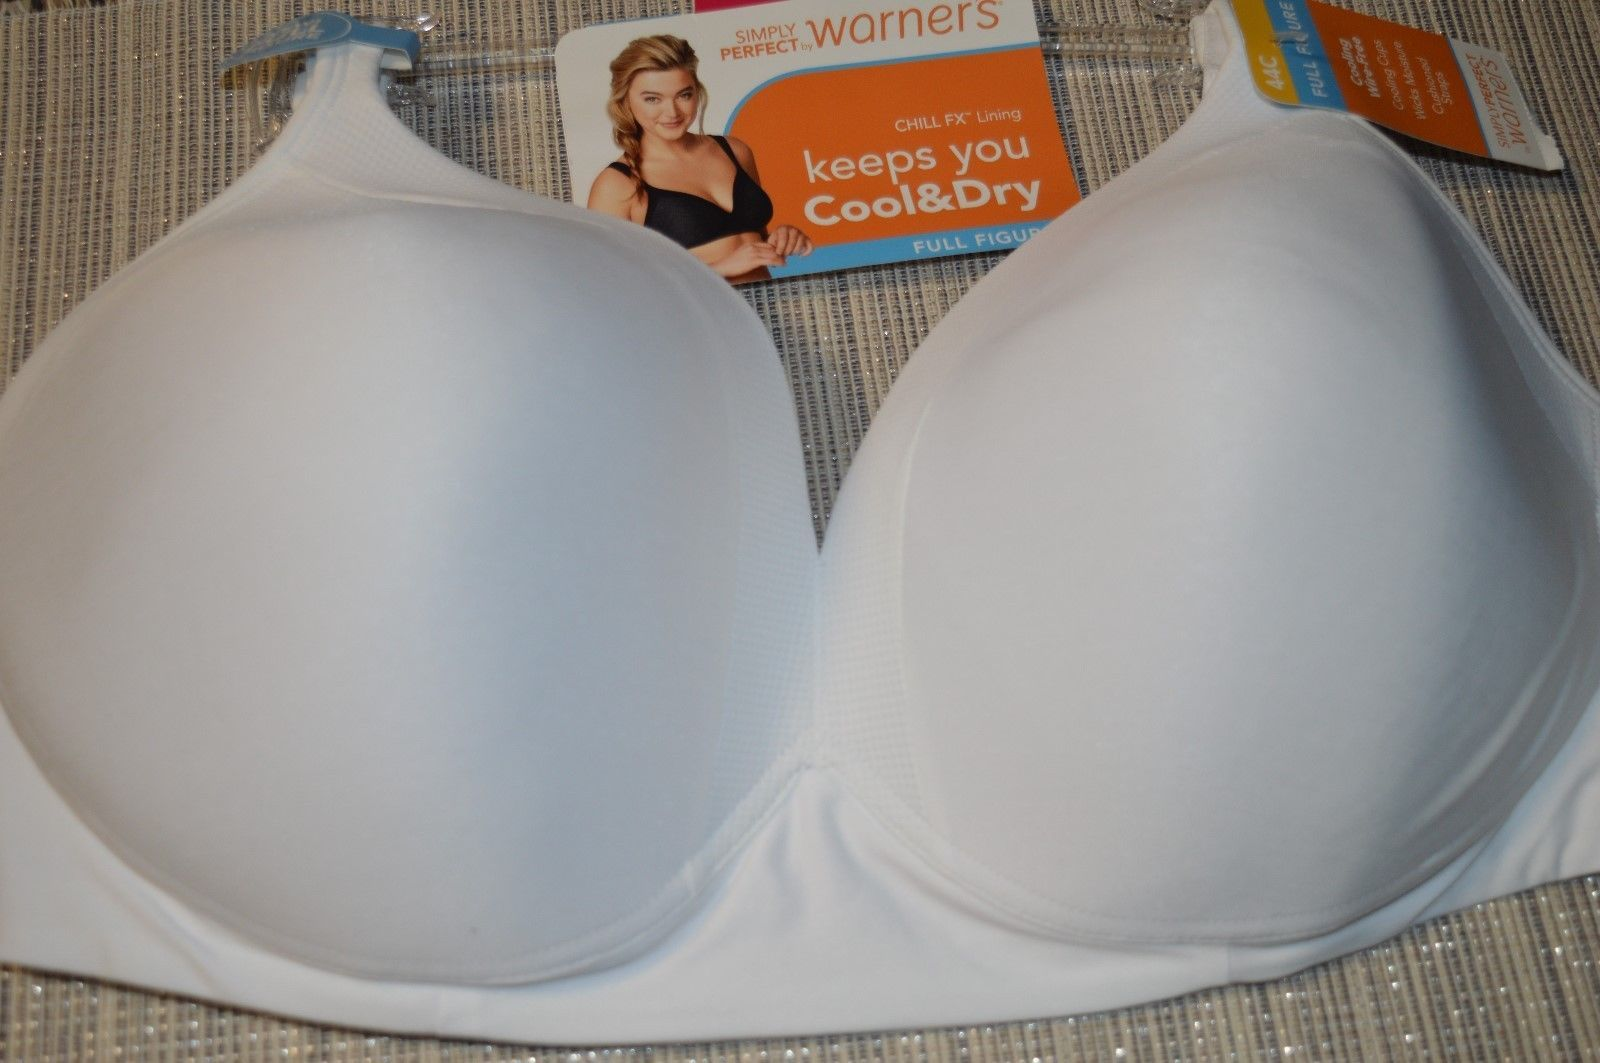 d737174658ad3 S l1600. S l1600. Previous. Simply Perfect by Warner s Women s Full Figure  Cooling Wire-Free Bra White 44C